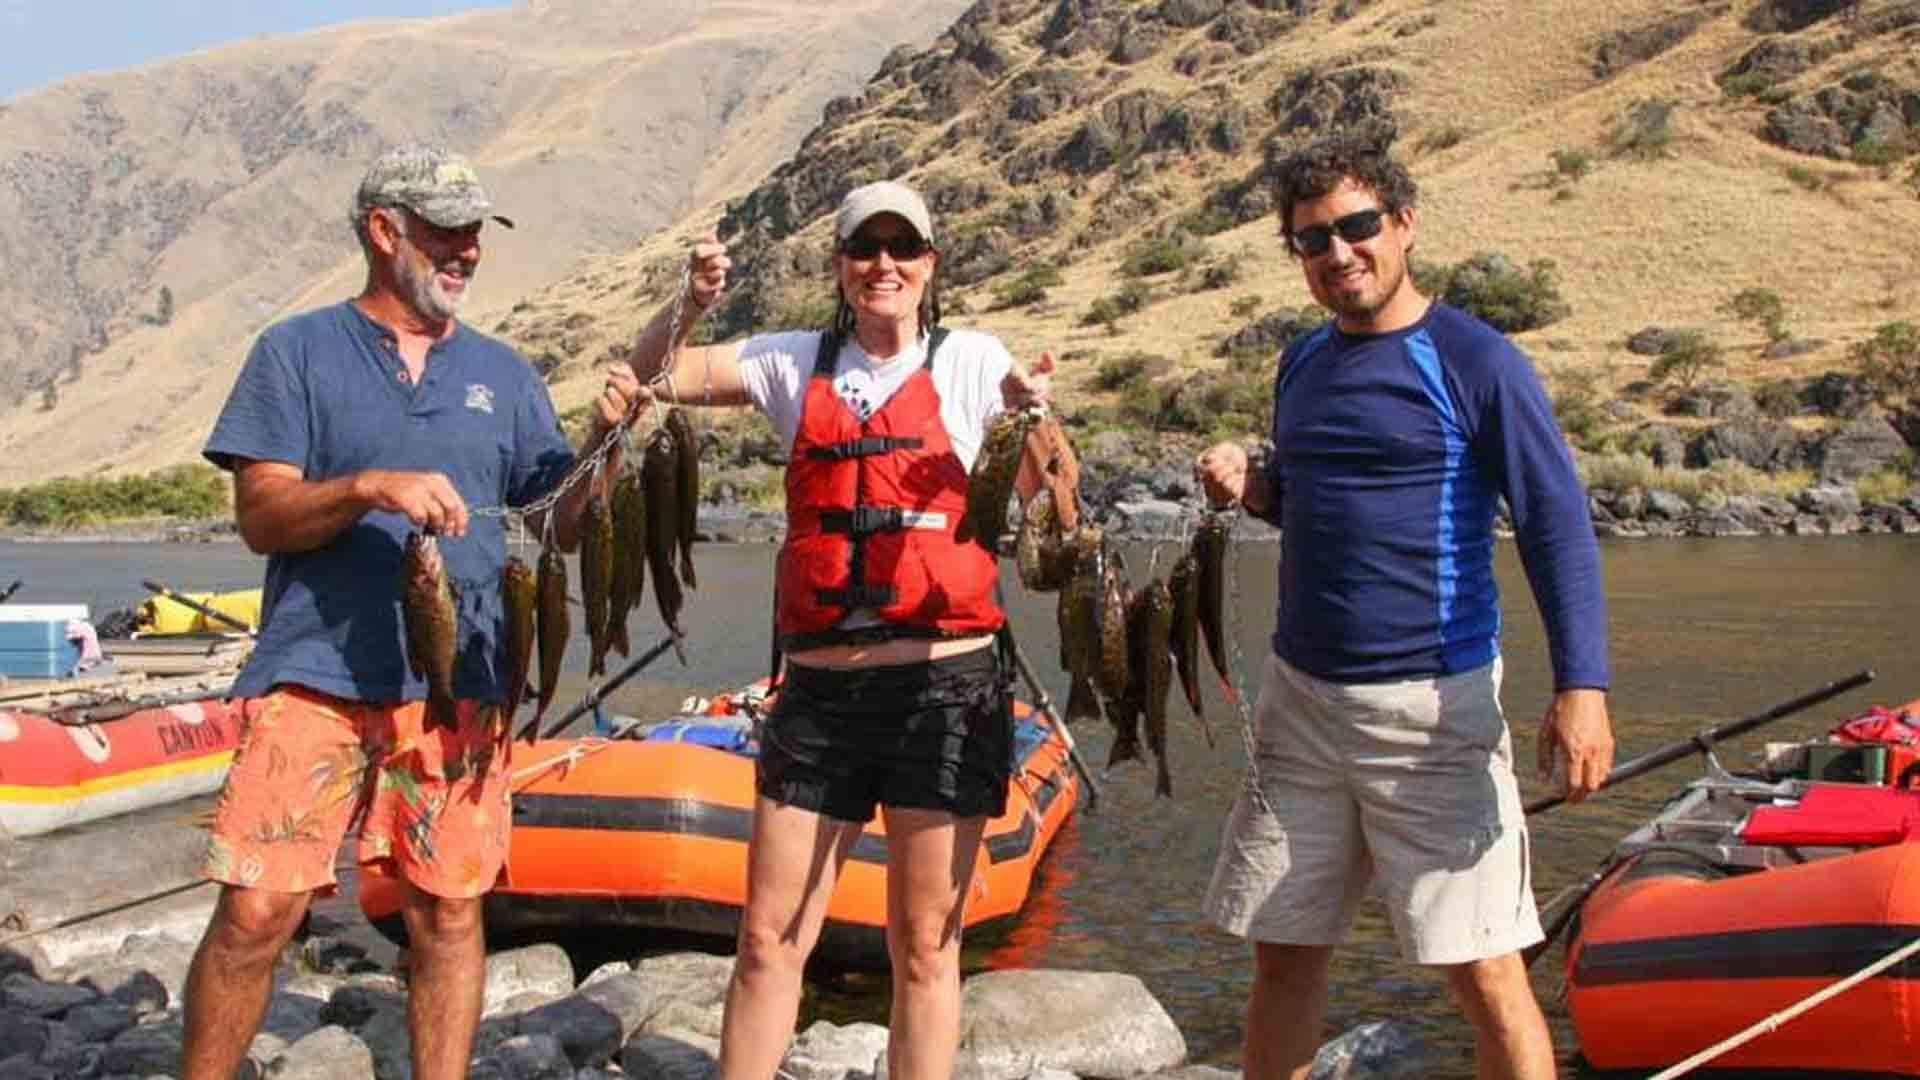 Anglers with Smallmouth Bass on Stringer